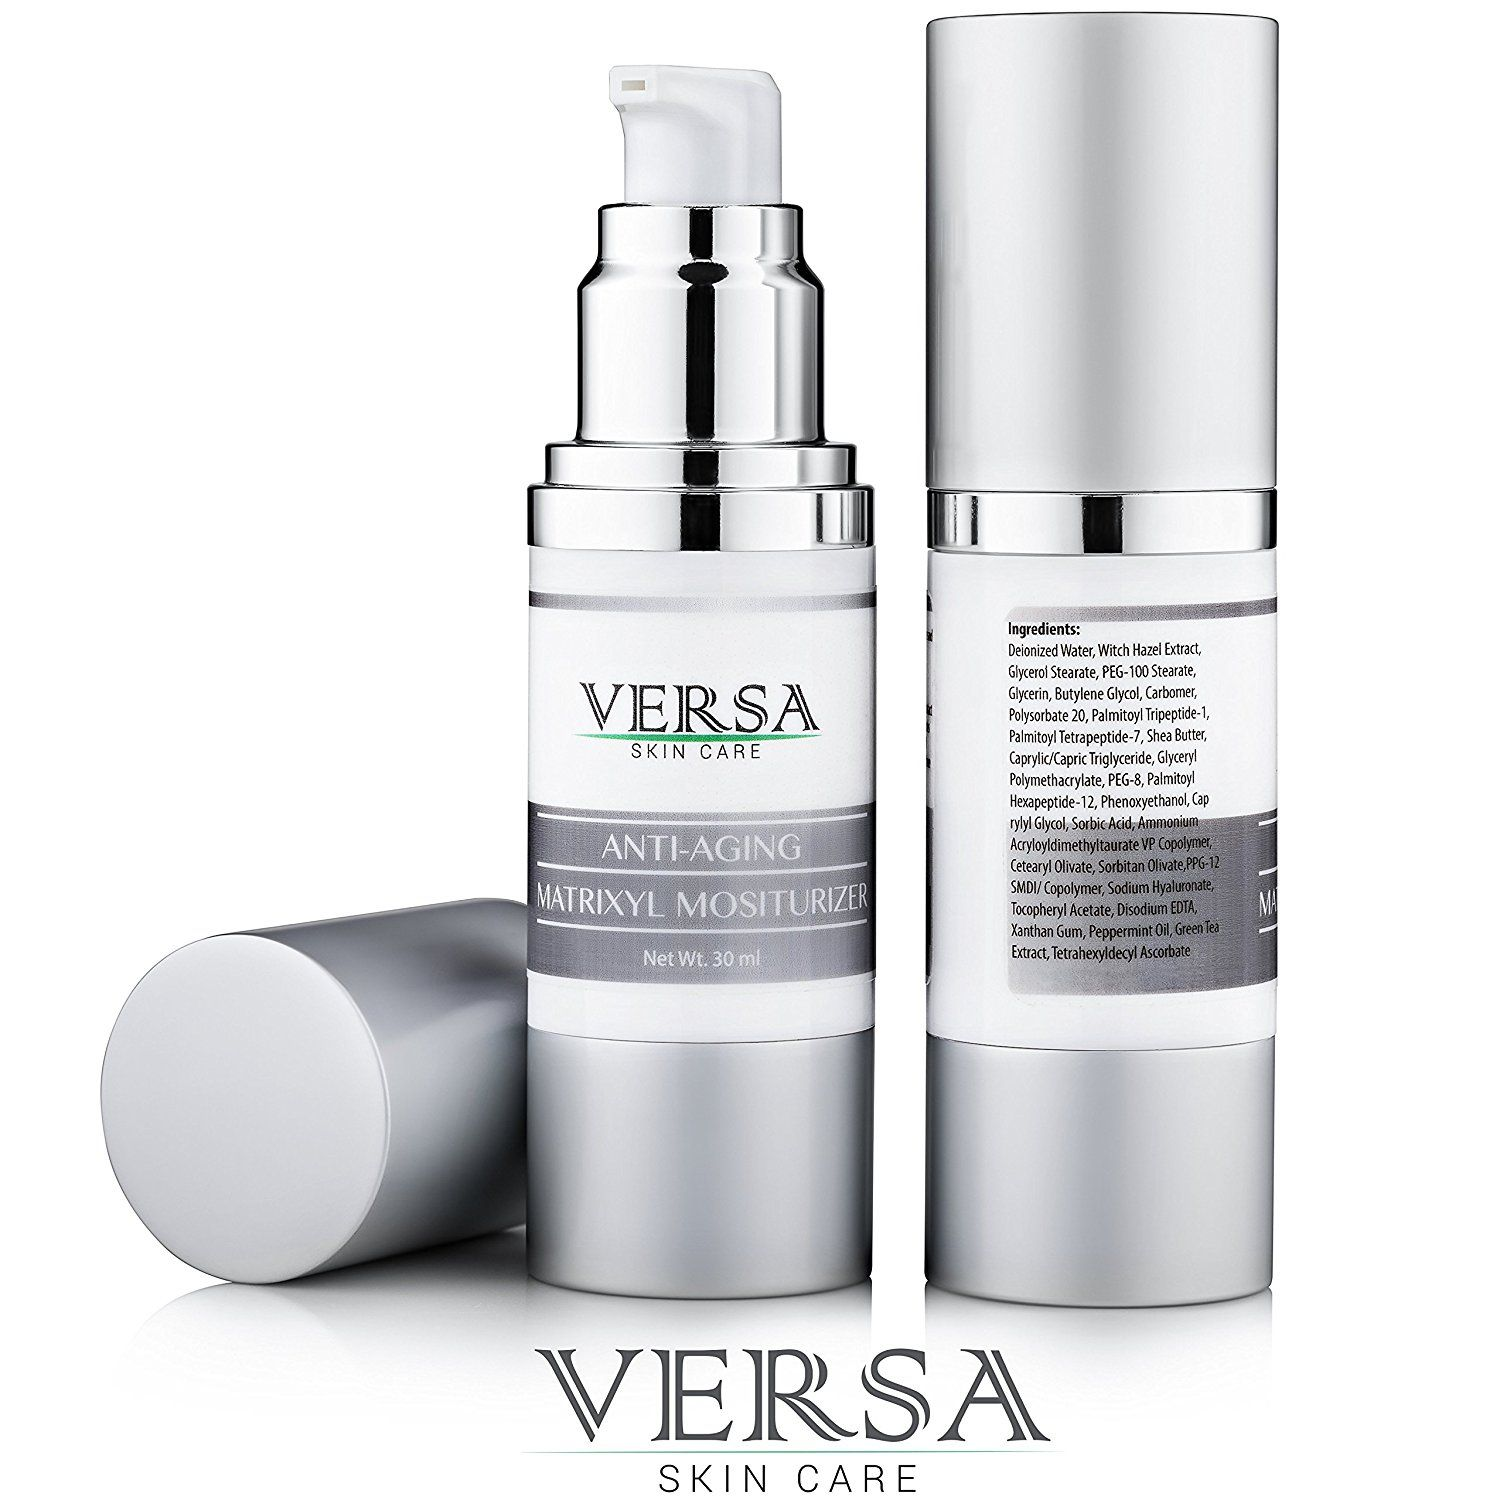 Versa matrixyl cream get rid of age spots with patented